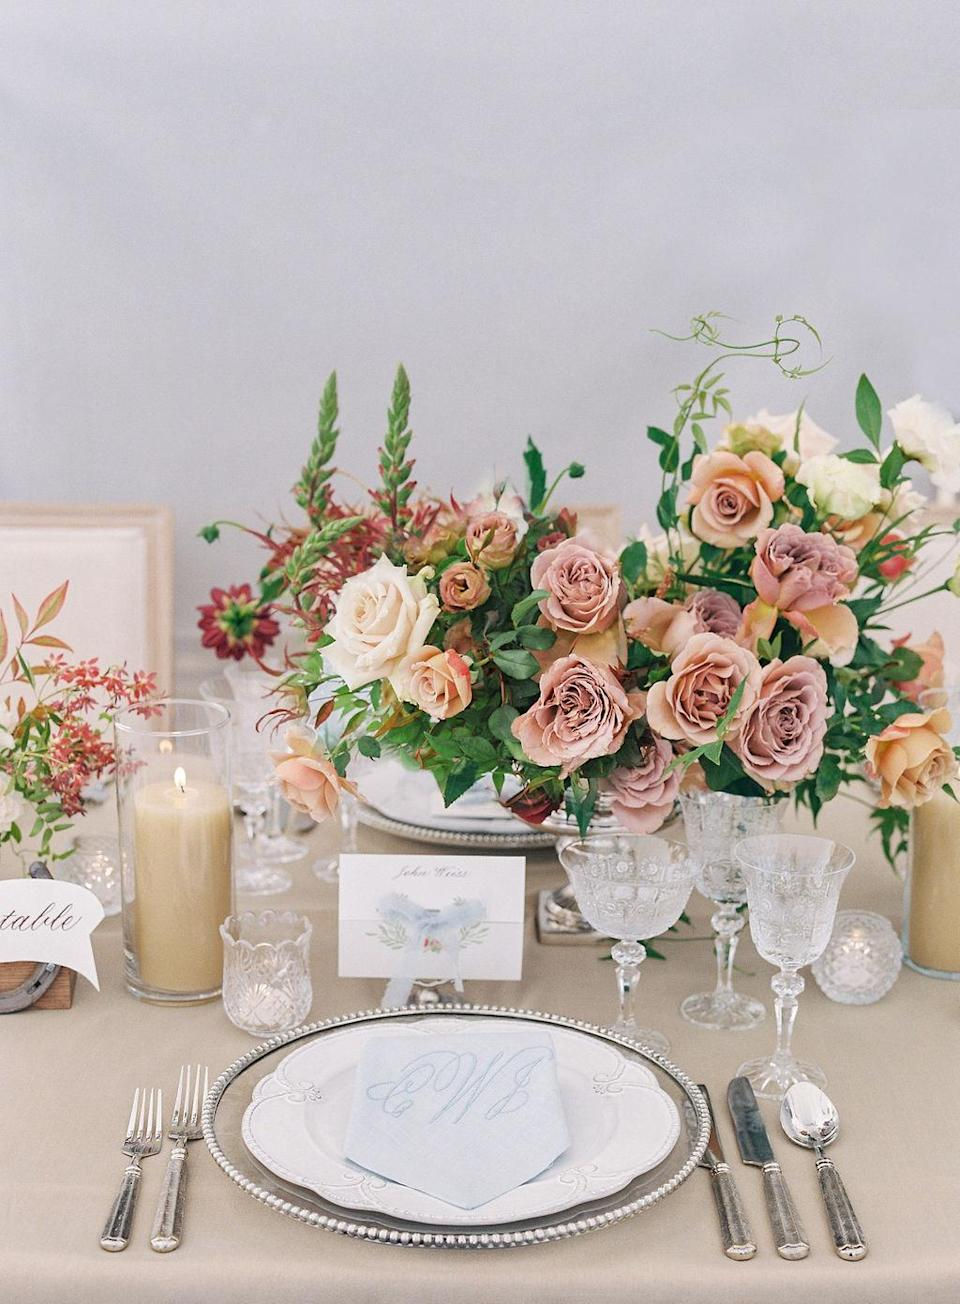 <p>Table details included pewter rimmed chargers paired with white china with scalloped edges, Tuscan flatware, and etched glassware. Footed silver urns and julep cups held centerpieces with roses in various neutral tones. Beige pillar candles placed in glass holders and small tea candles in etched glass votives were the finishing touches.</p>